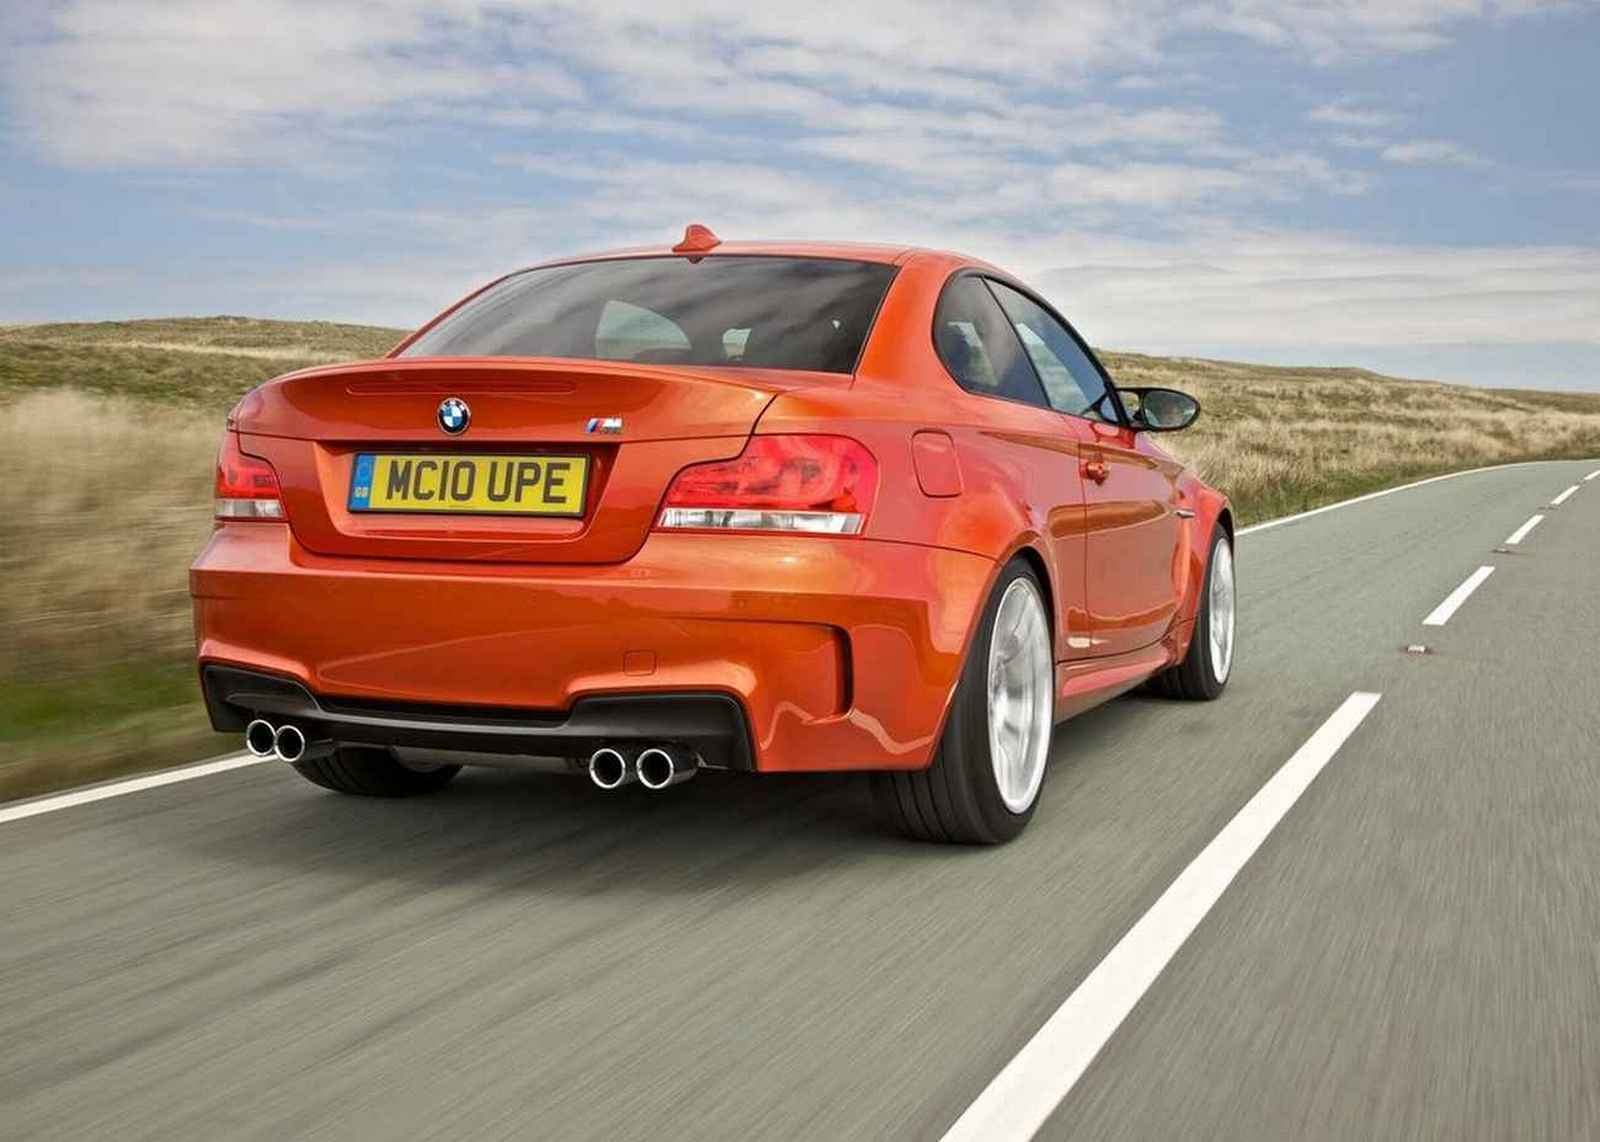 2011 BMW 1 Series M Coupe UK Version 7 2011 BMW 1 Series M Coupe UK Version  A Car Review